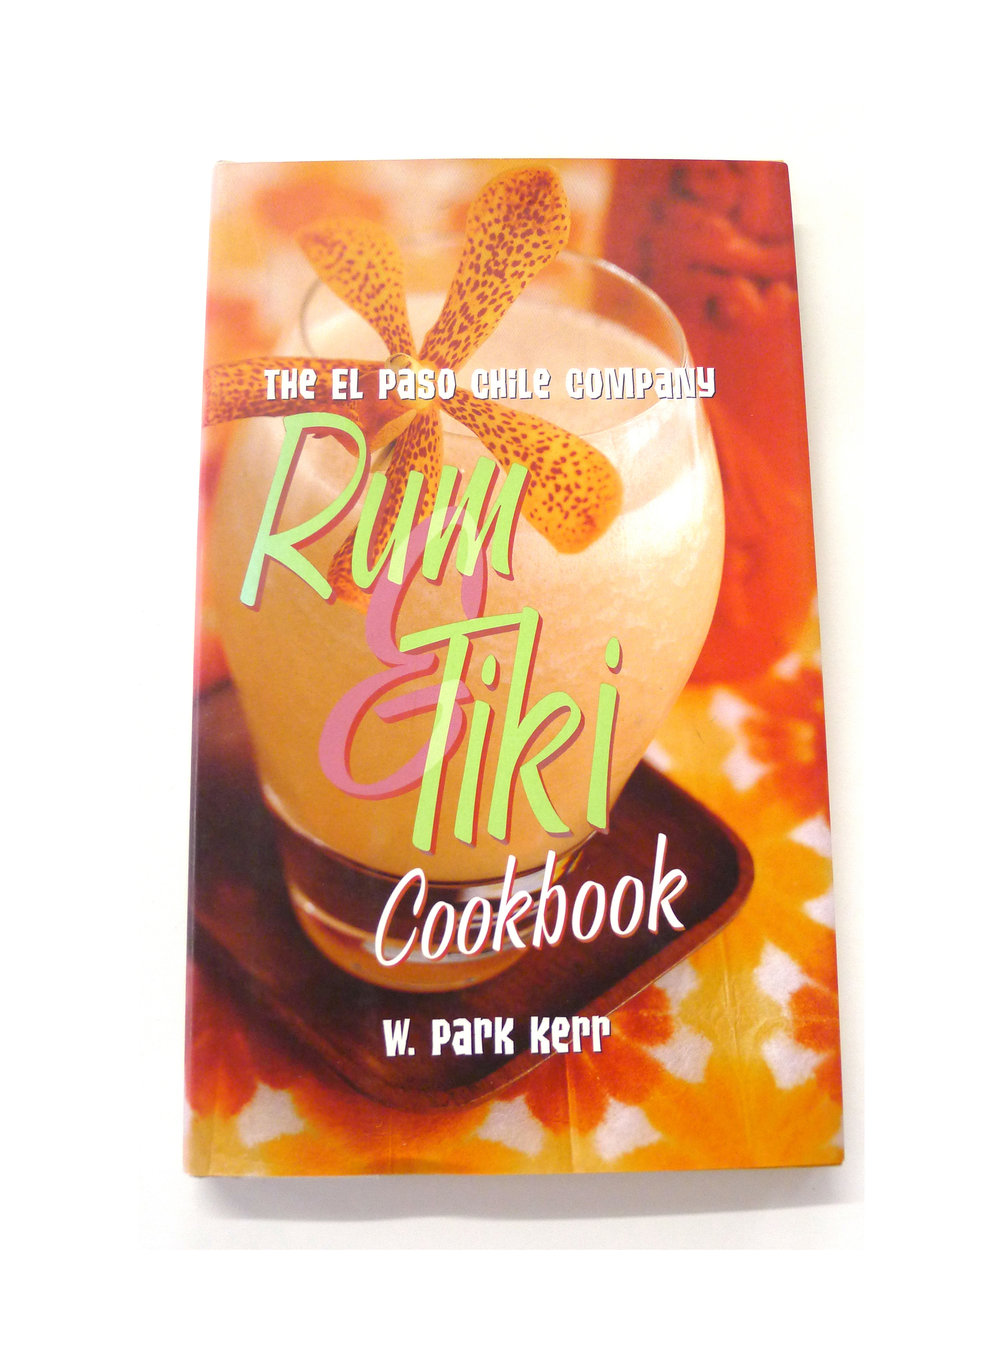 Rum & Tiki Cookbook. Published by William Morrow and Company